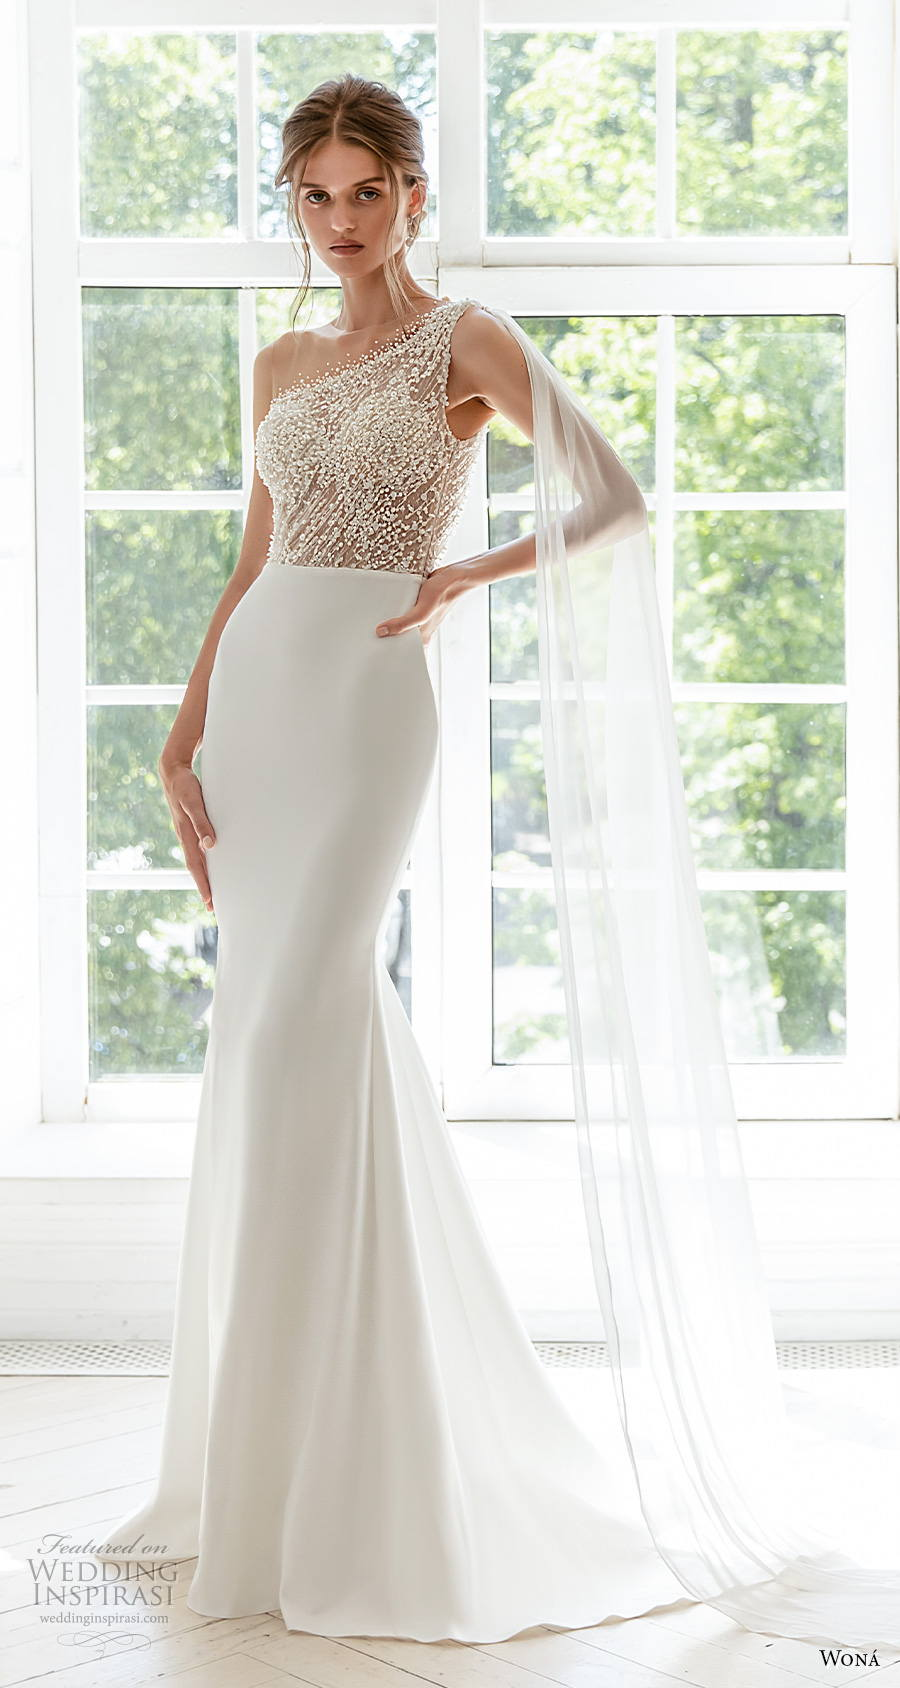 wona concept 2021 romance bridal illusion one shoulder heavily embellished bodice elegant fit and flare wedding dress medium train (14) mv